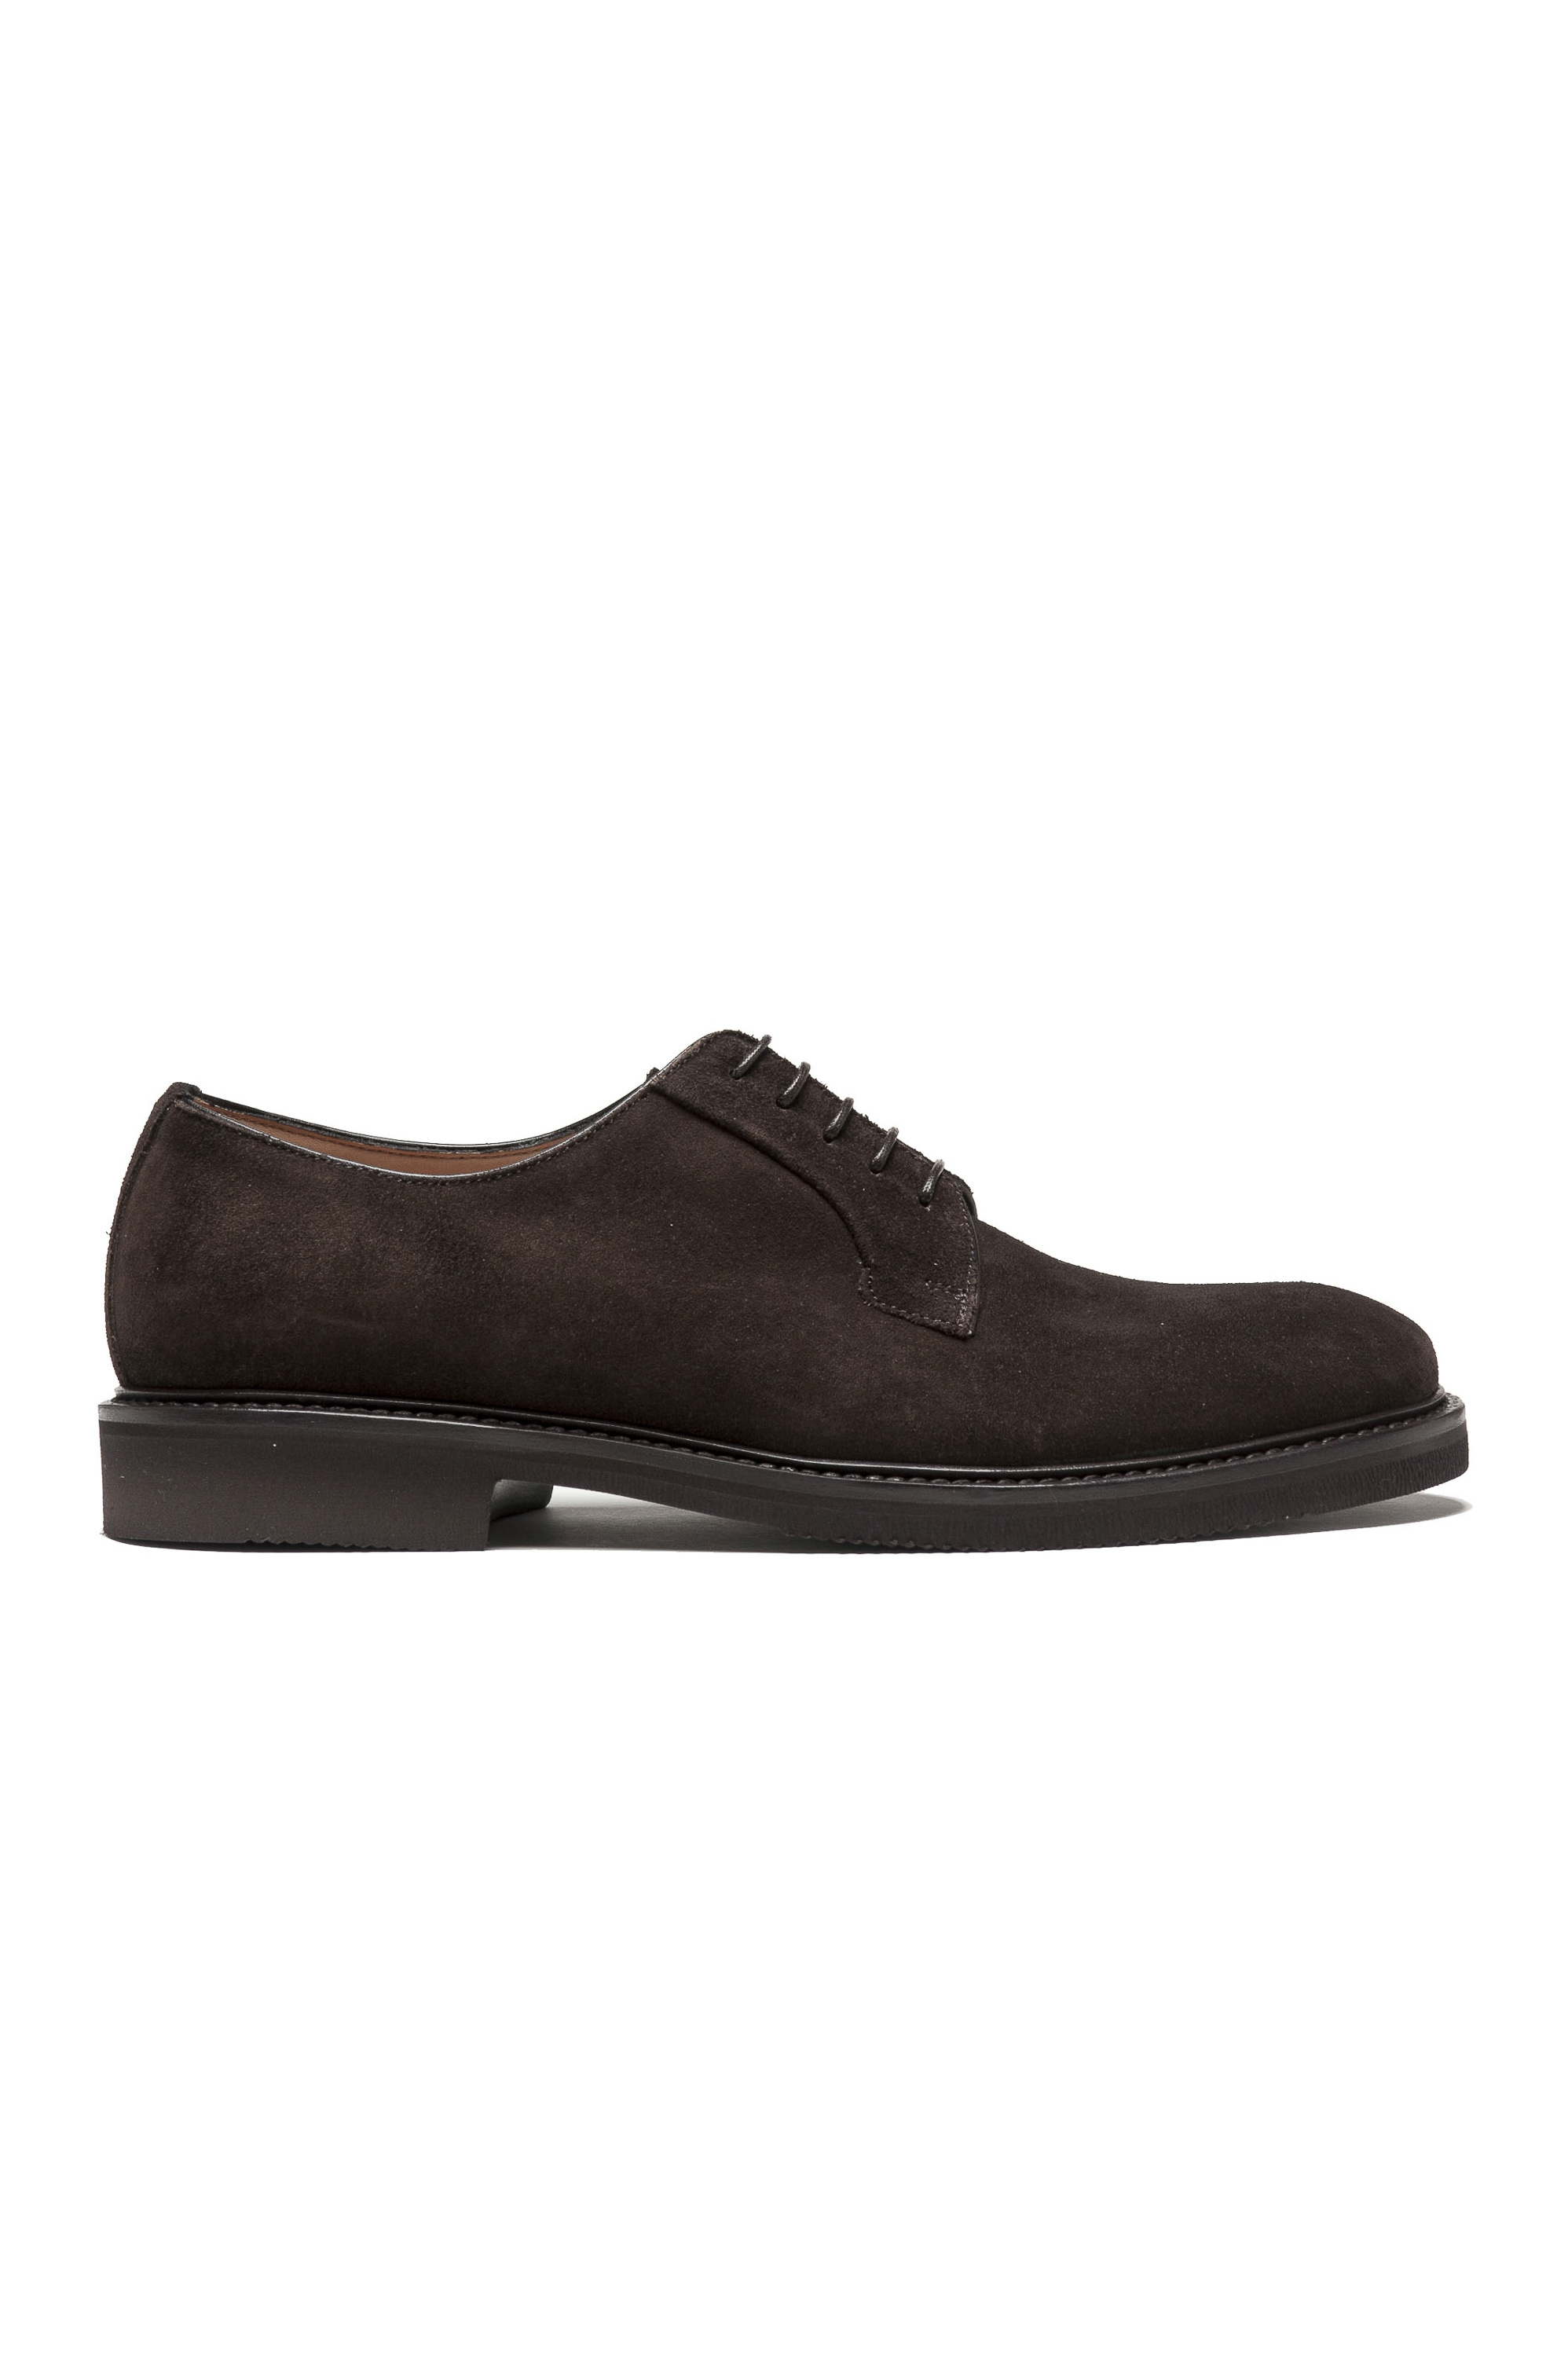 SBU 01498_19AW Brown lace-up plain suede derbies with Vibram rubber sole 01